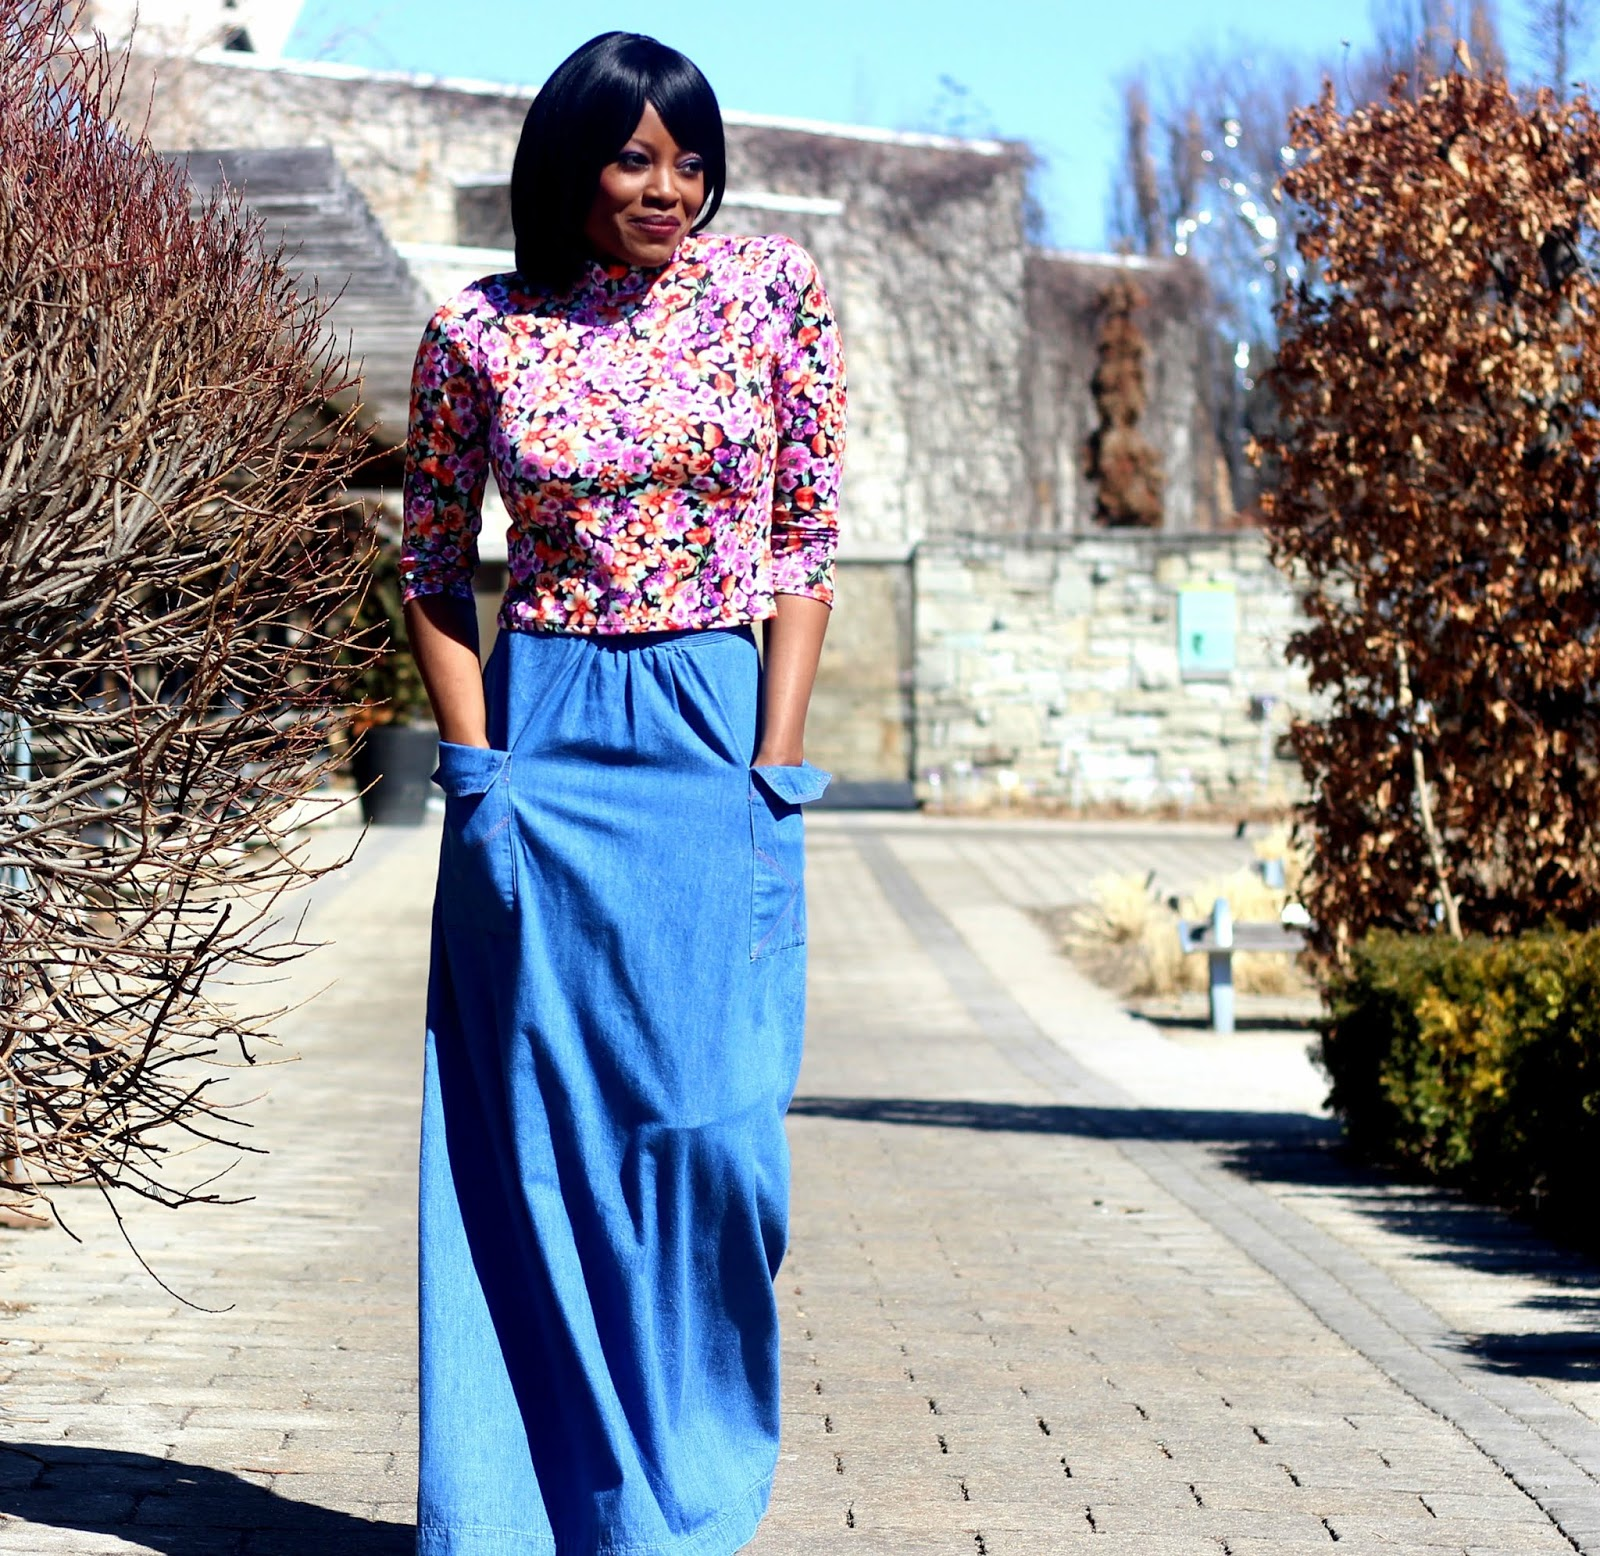 DEAR DENIM SKIRT LOVERS, JUST LIKE SUMMER, YOU CAN WEAR A CROP TOP IN SPRING